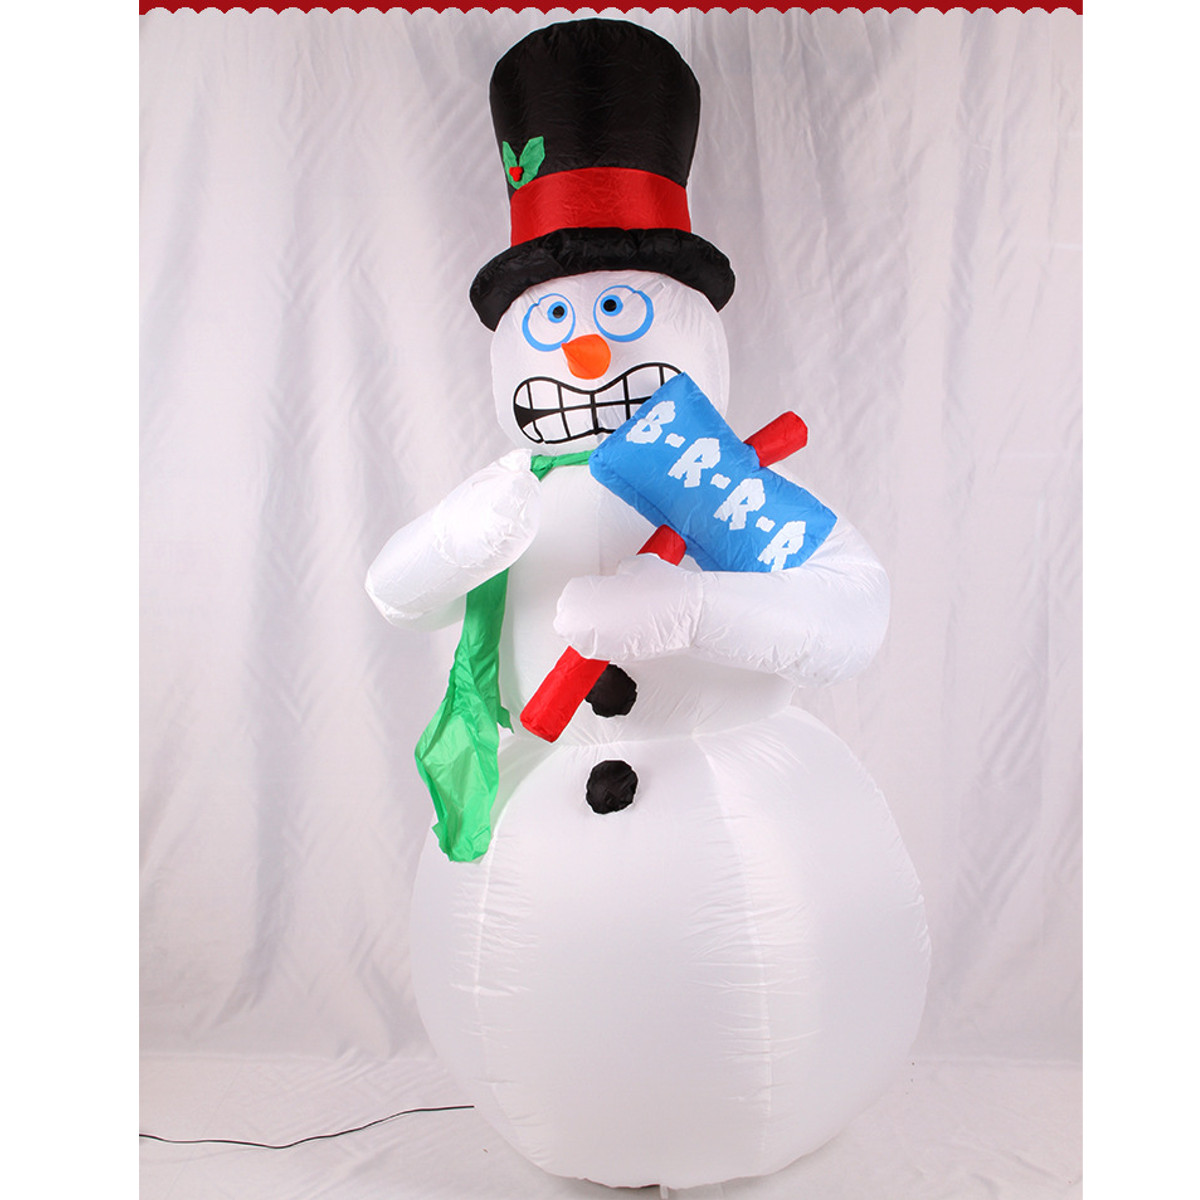 Inflatable Christmas Santa Snowman Decoration Xmas Decor Blow Up ...